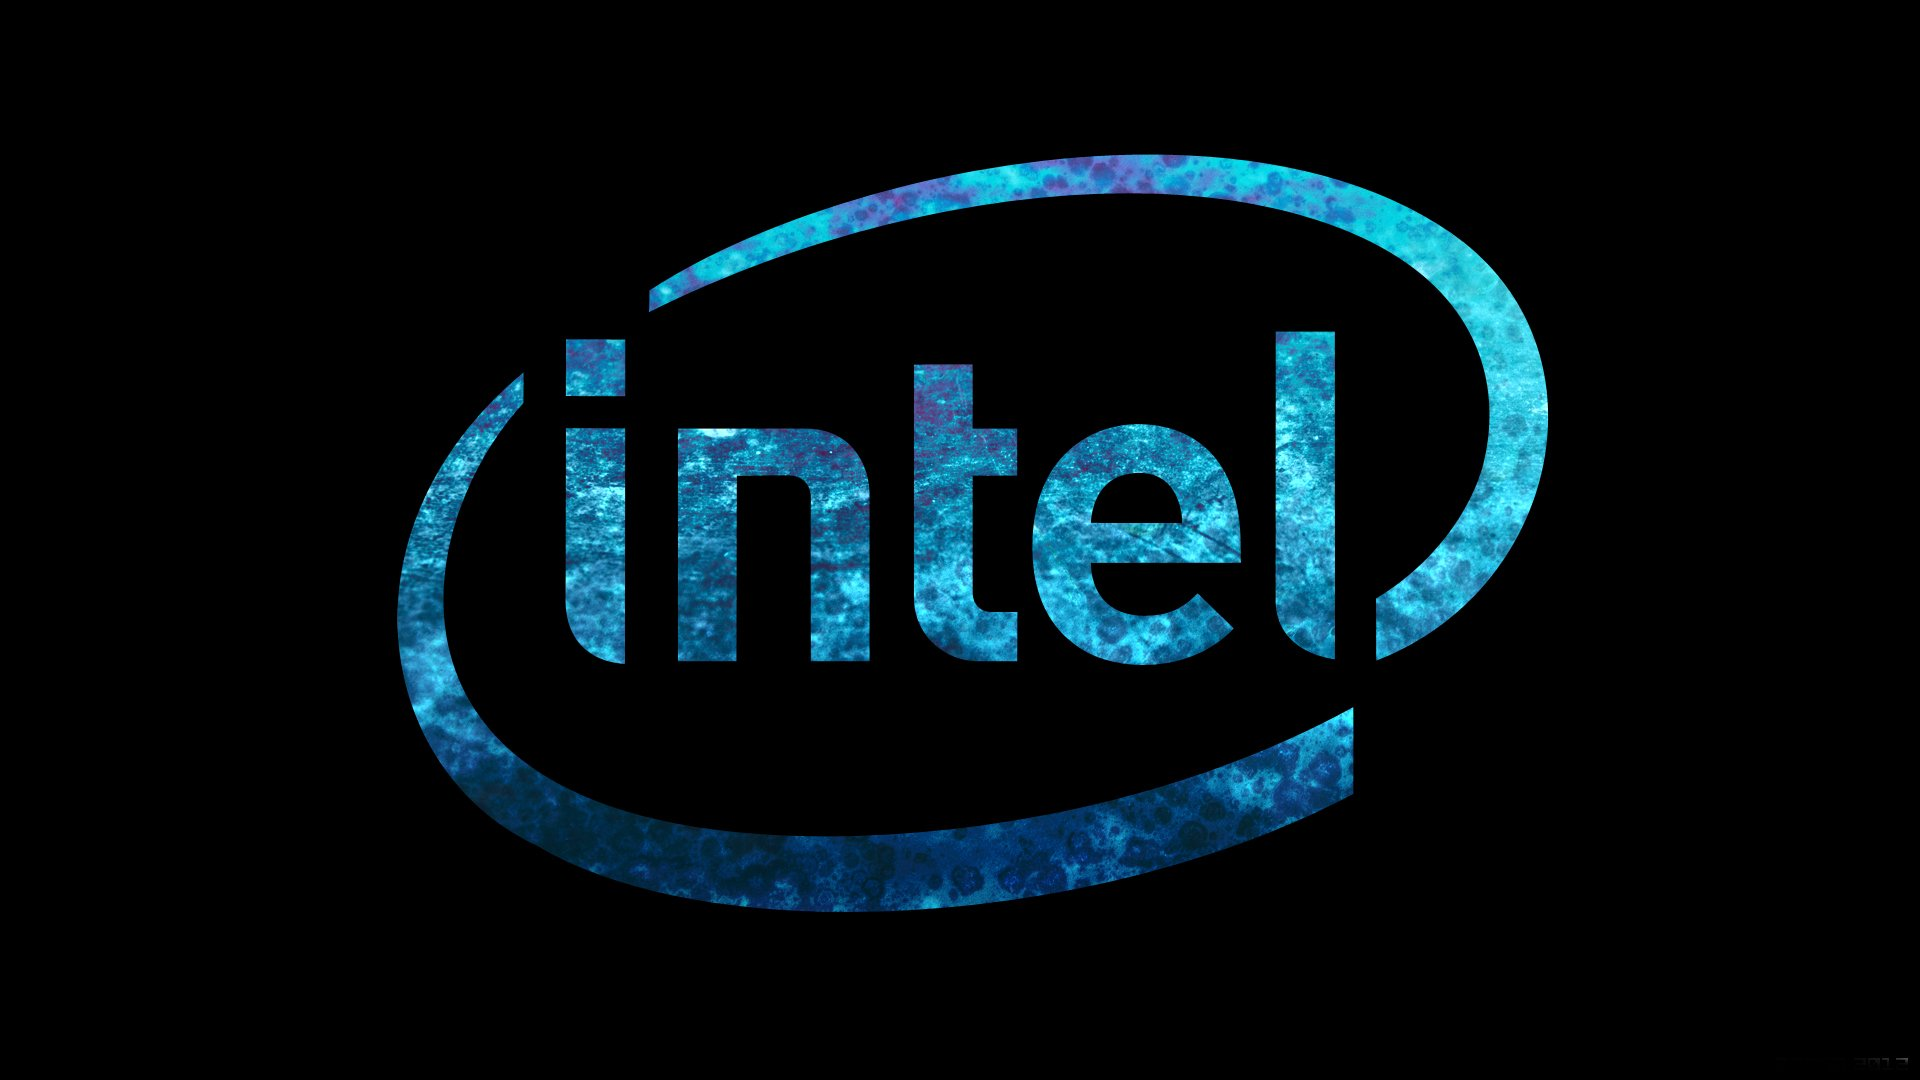 The US authorities have allowed Intel to continue the supplying its Huawei products